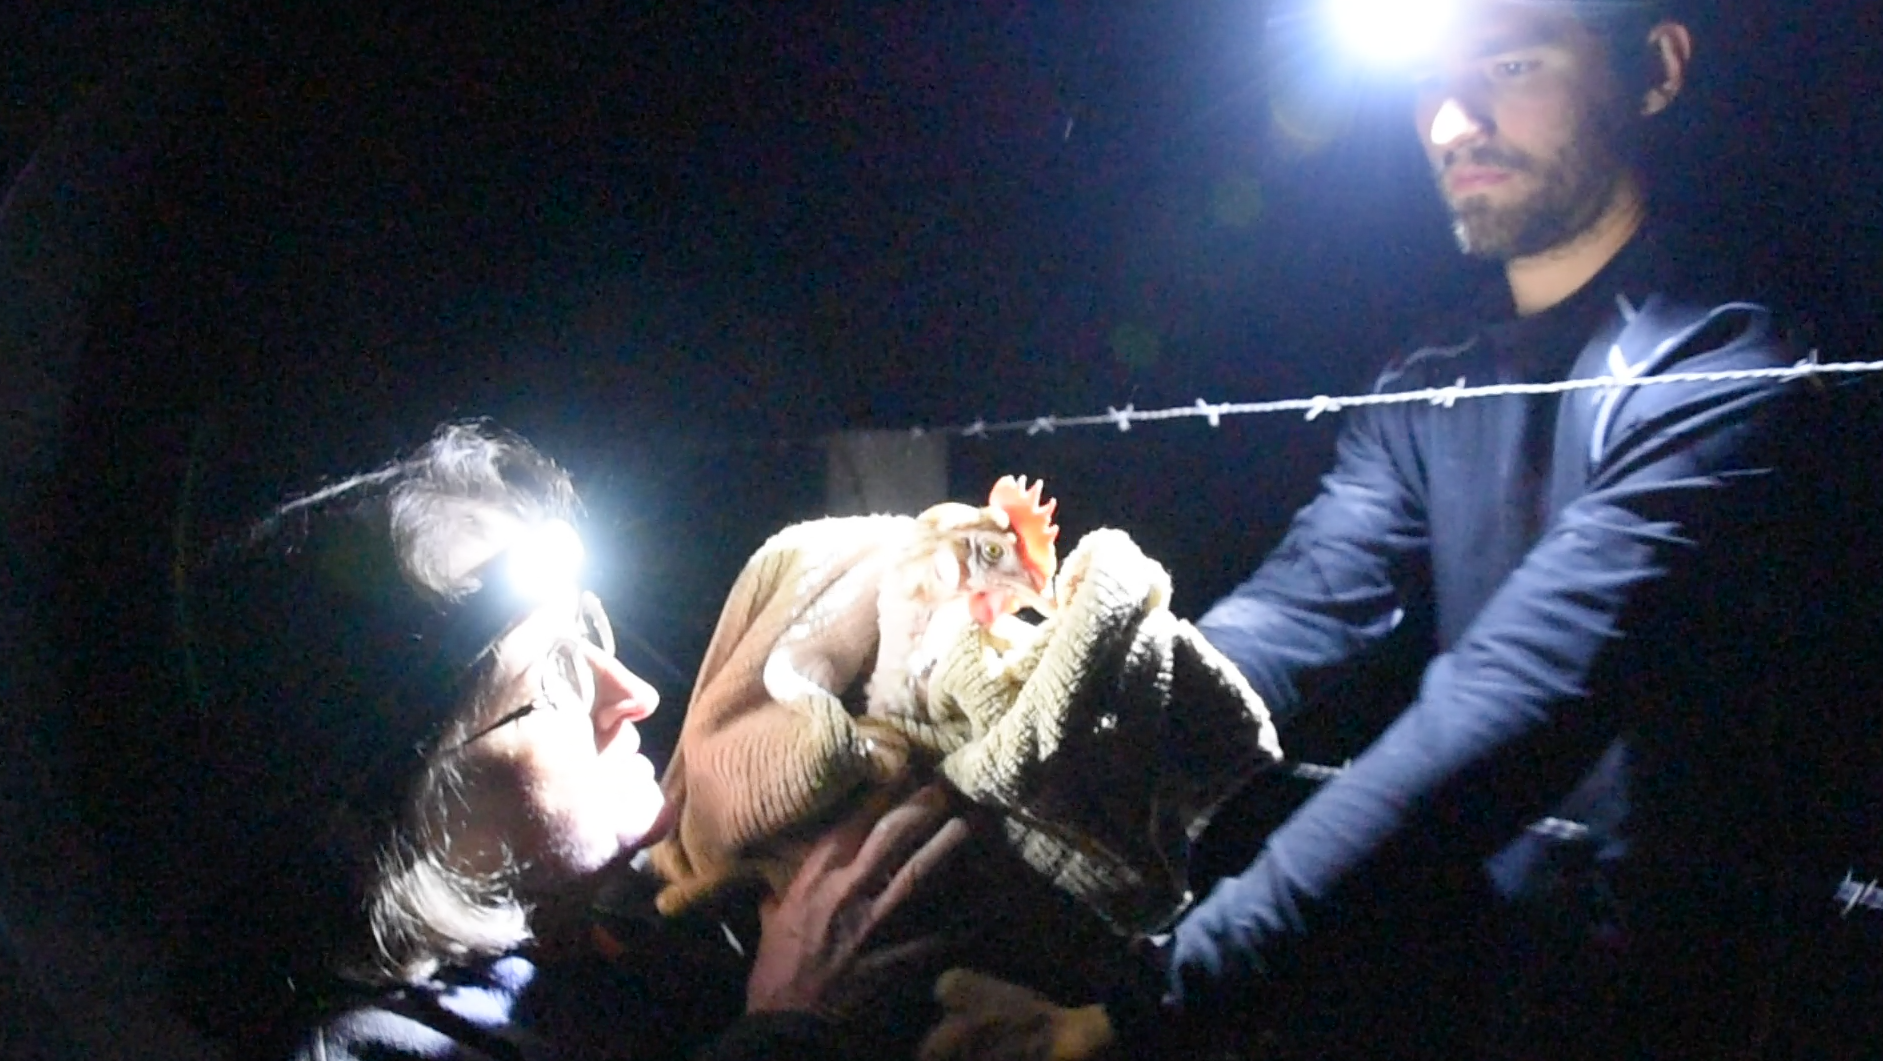 DxE animal rights activist Jason Oliver passes injured hen through fence to activist Diane Gandee Sorbi, so she can be taken to a vet.